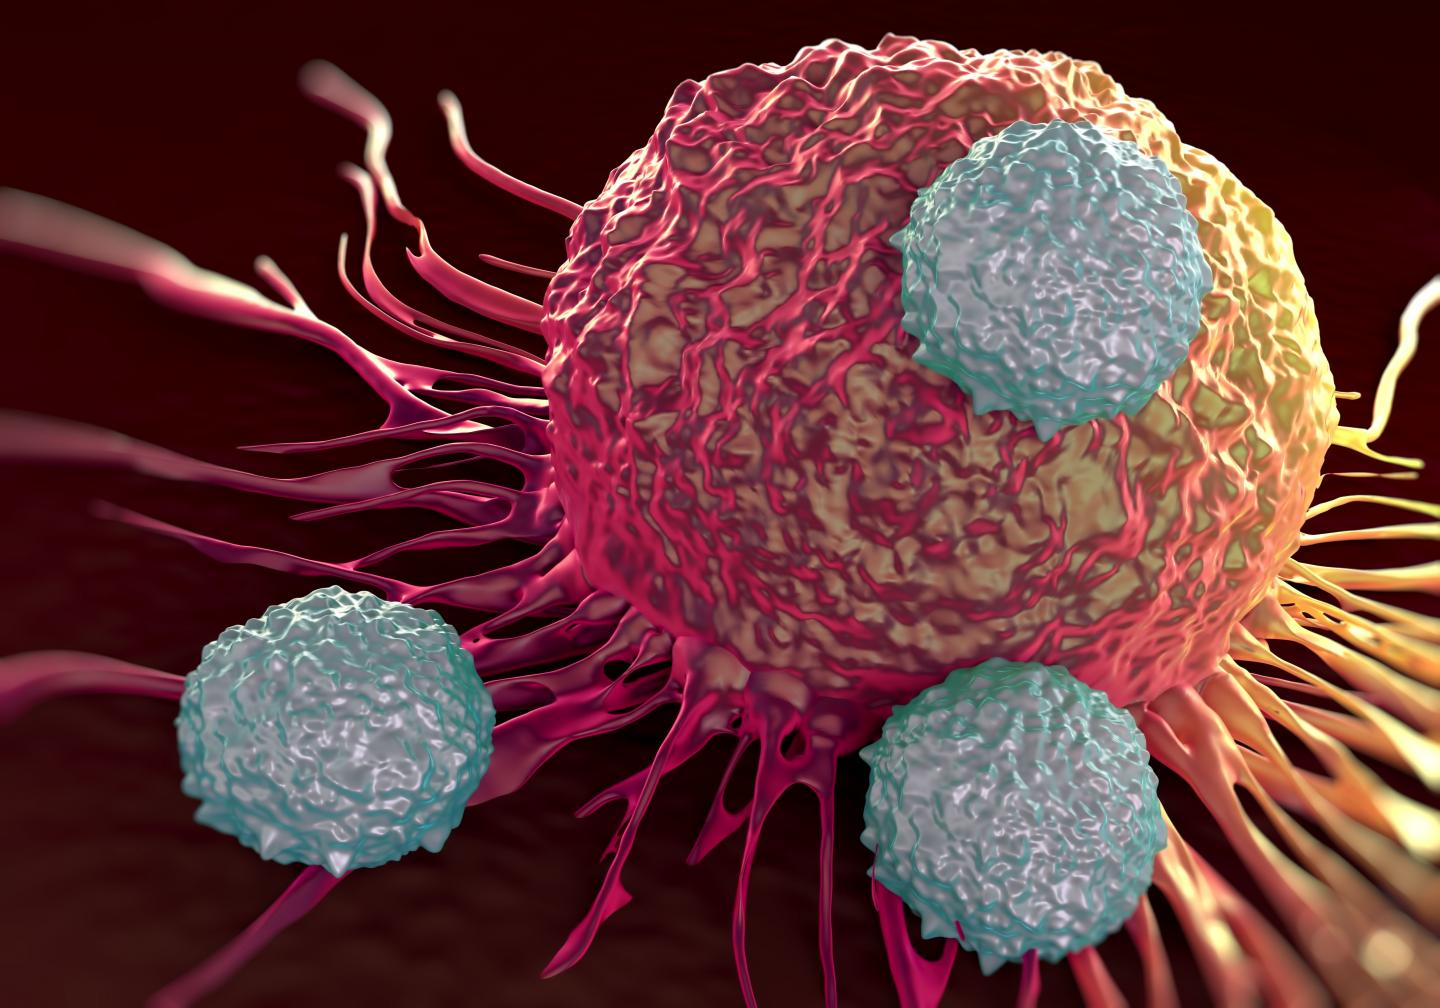 T cells (shown in gray) attacking cancer cells.